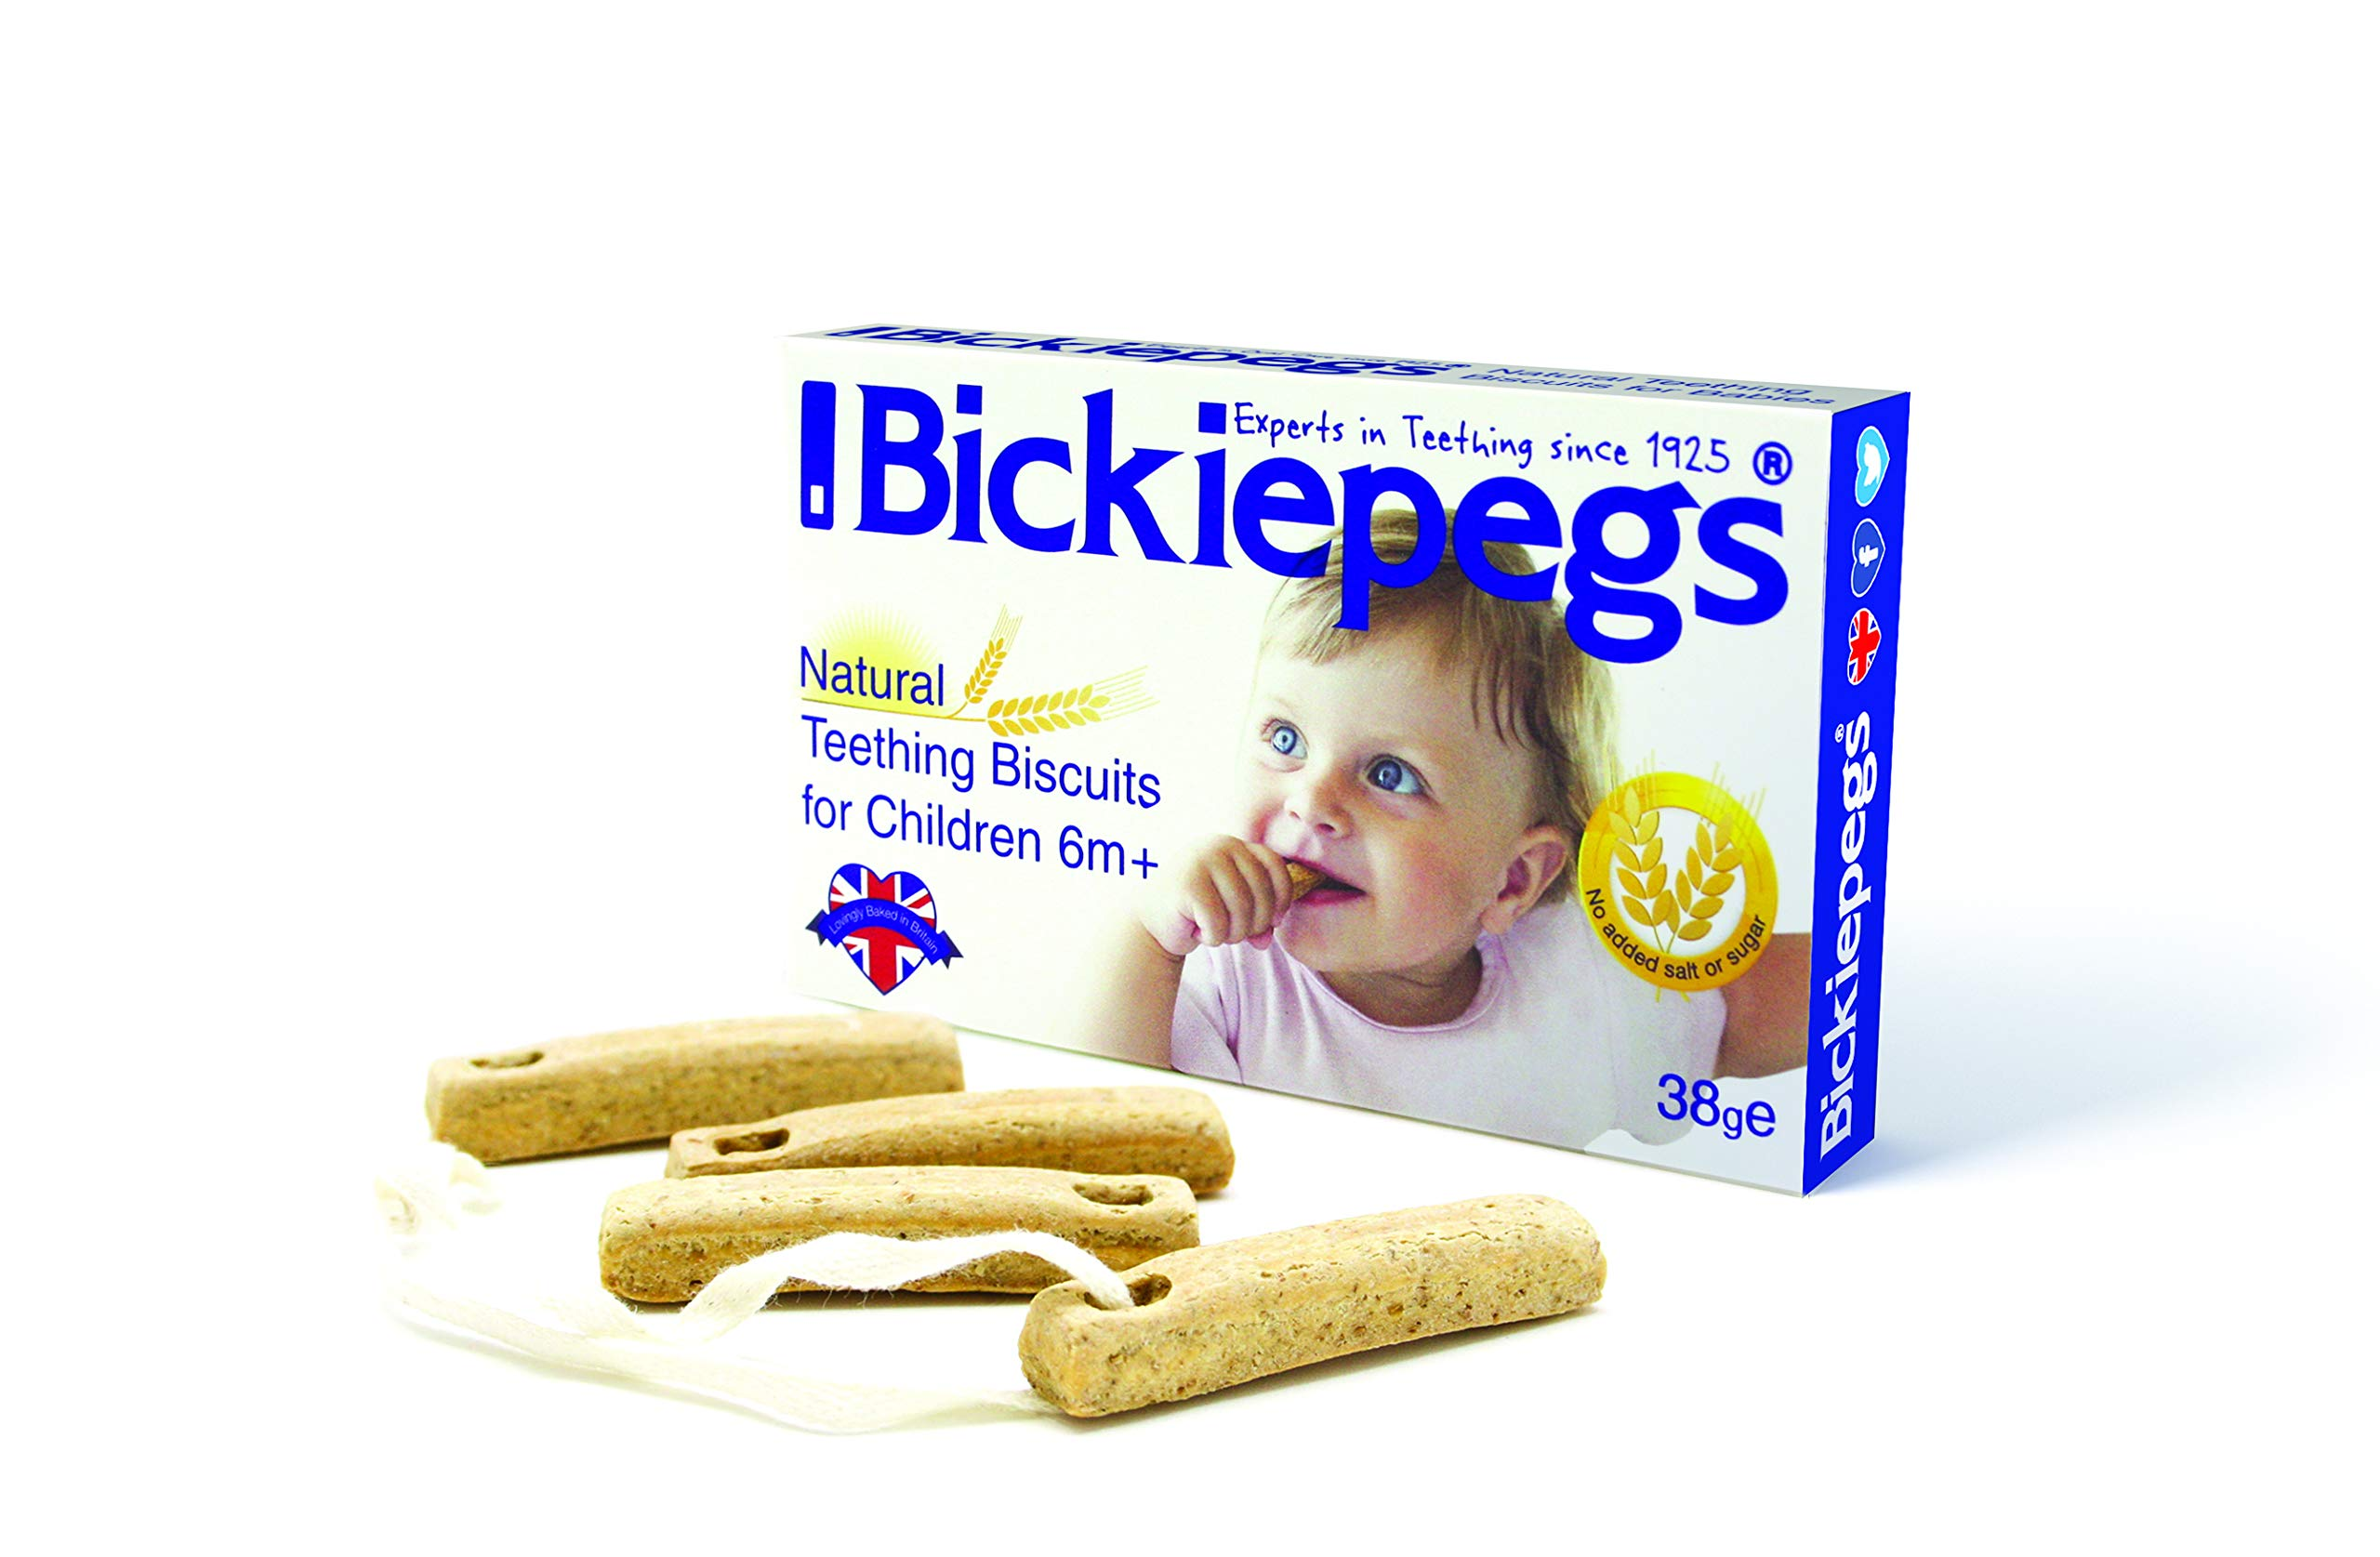 Bickiepegs Teething Biscuits 38g x 3 Packs